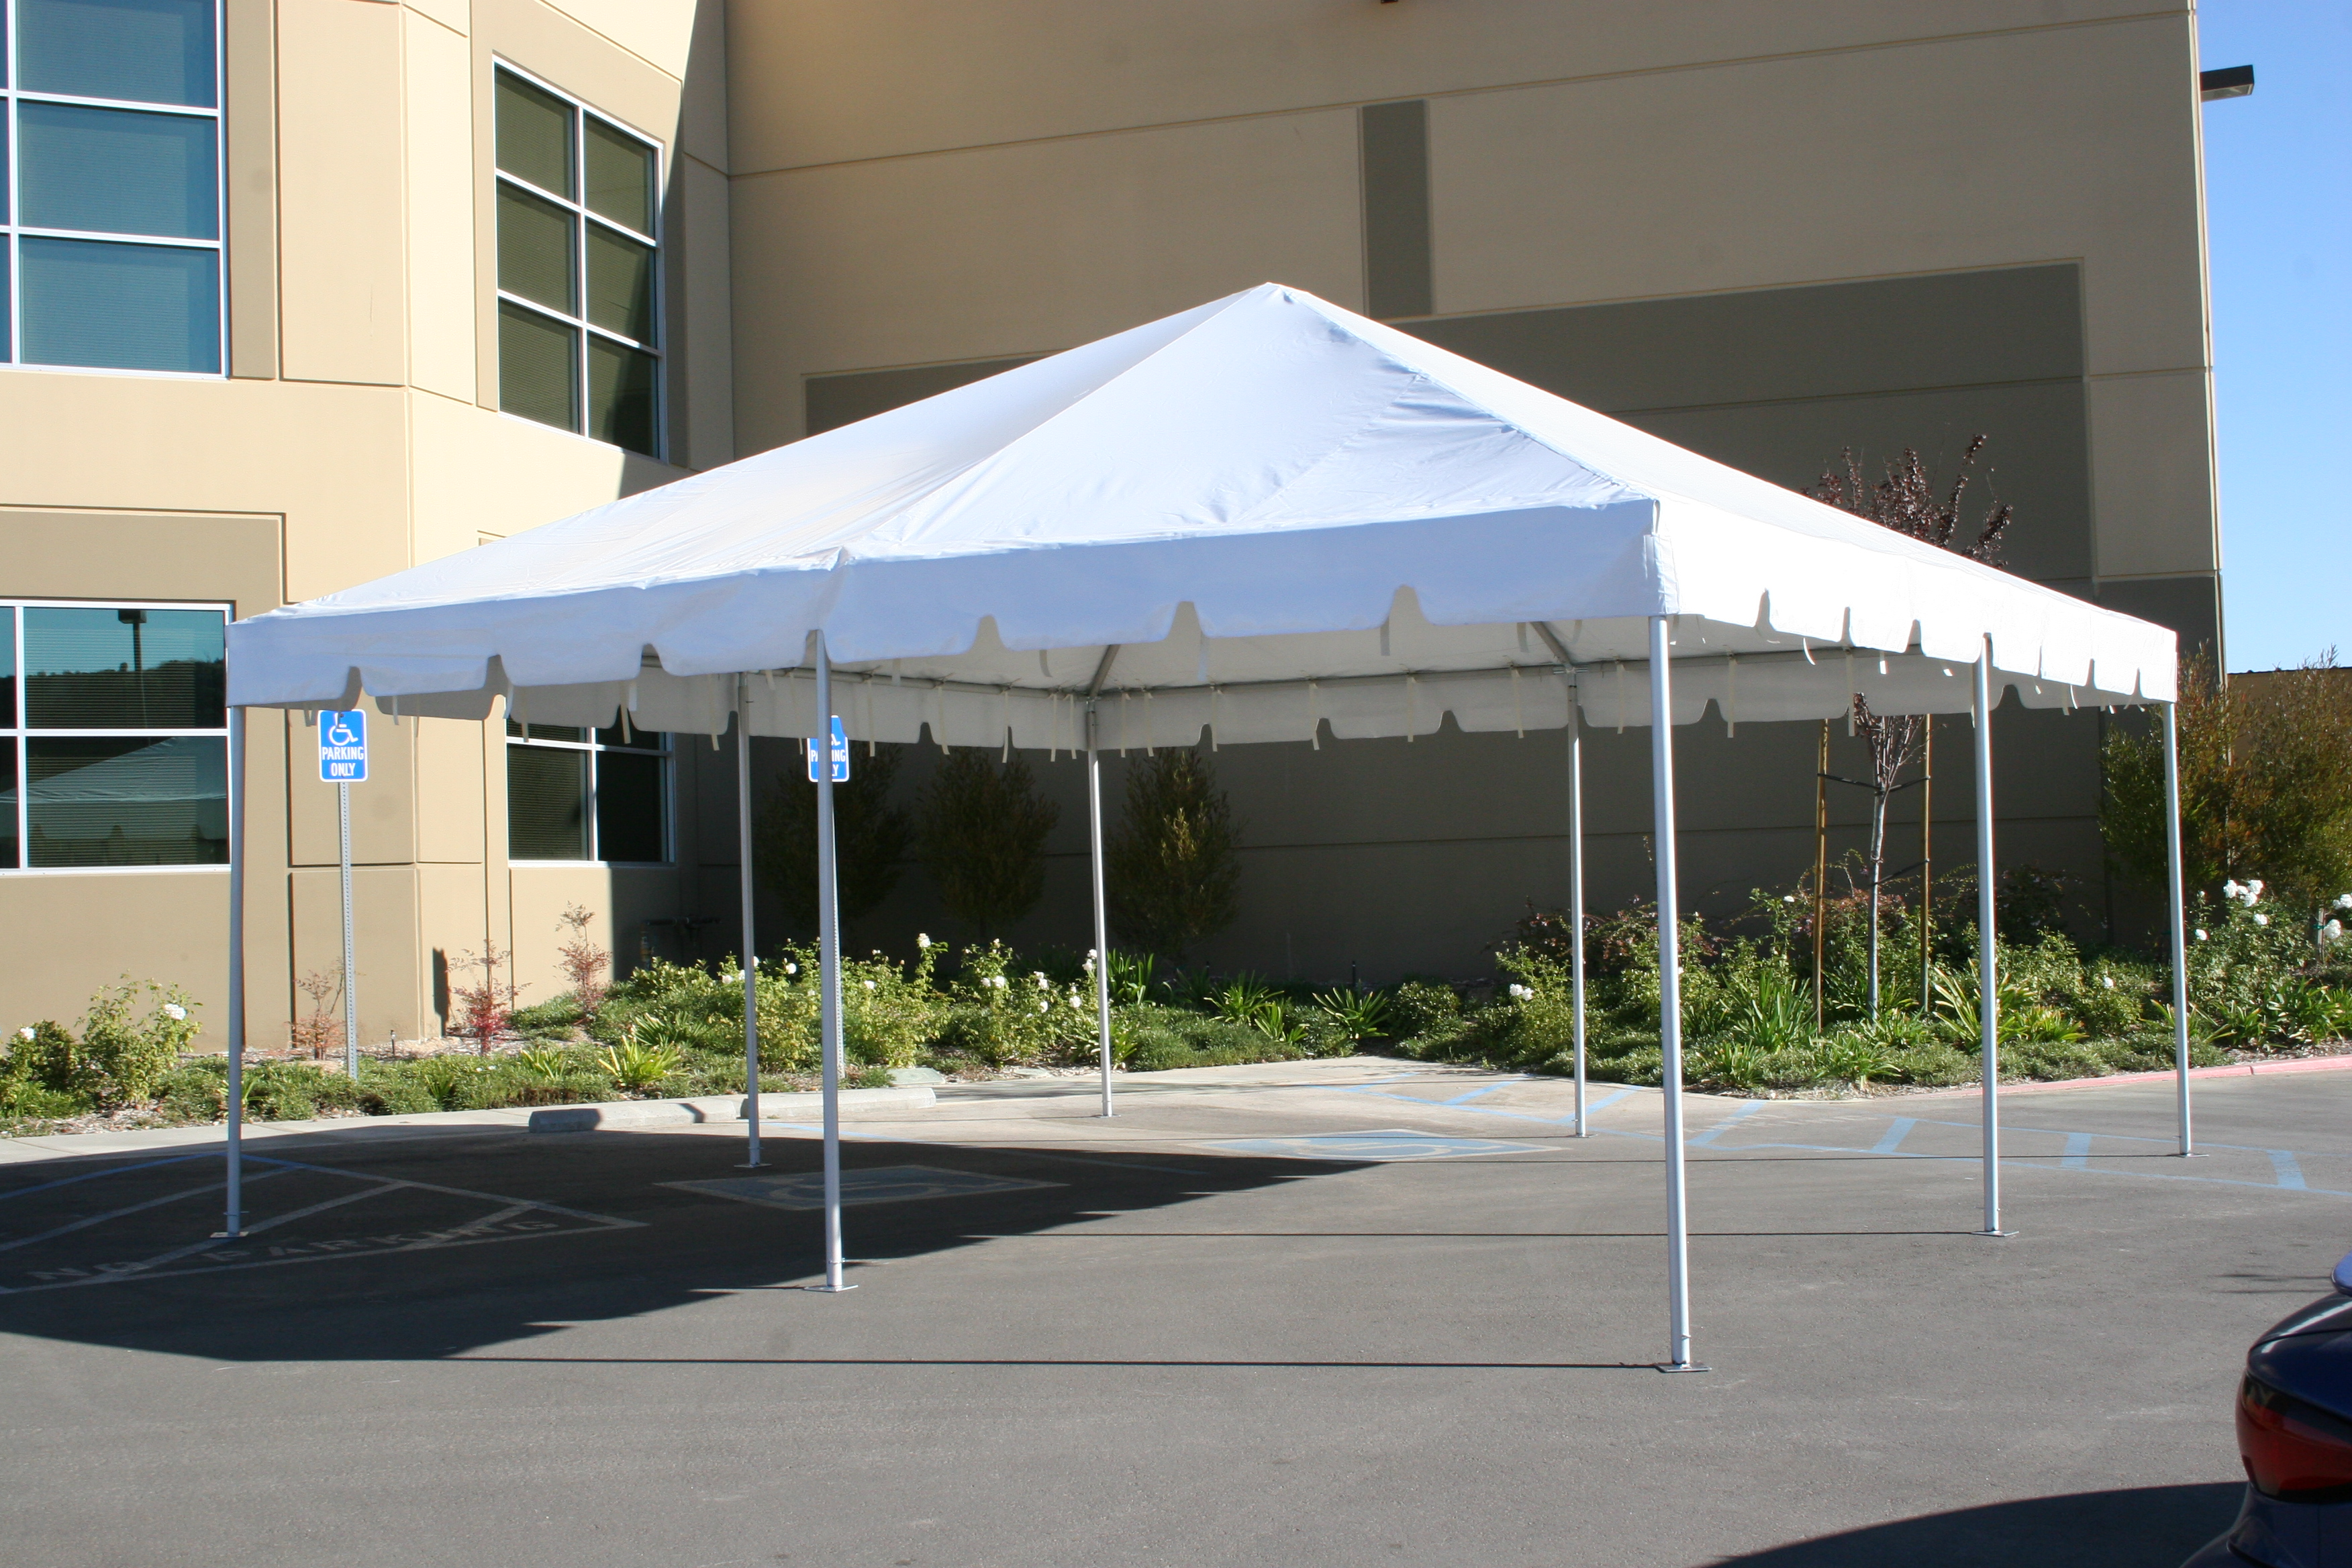 20X20 Frame Tents For Sale & Our News | Worldwide Tents